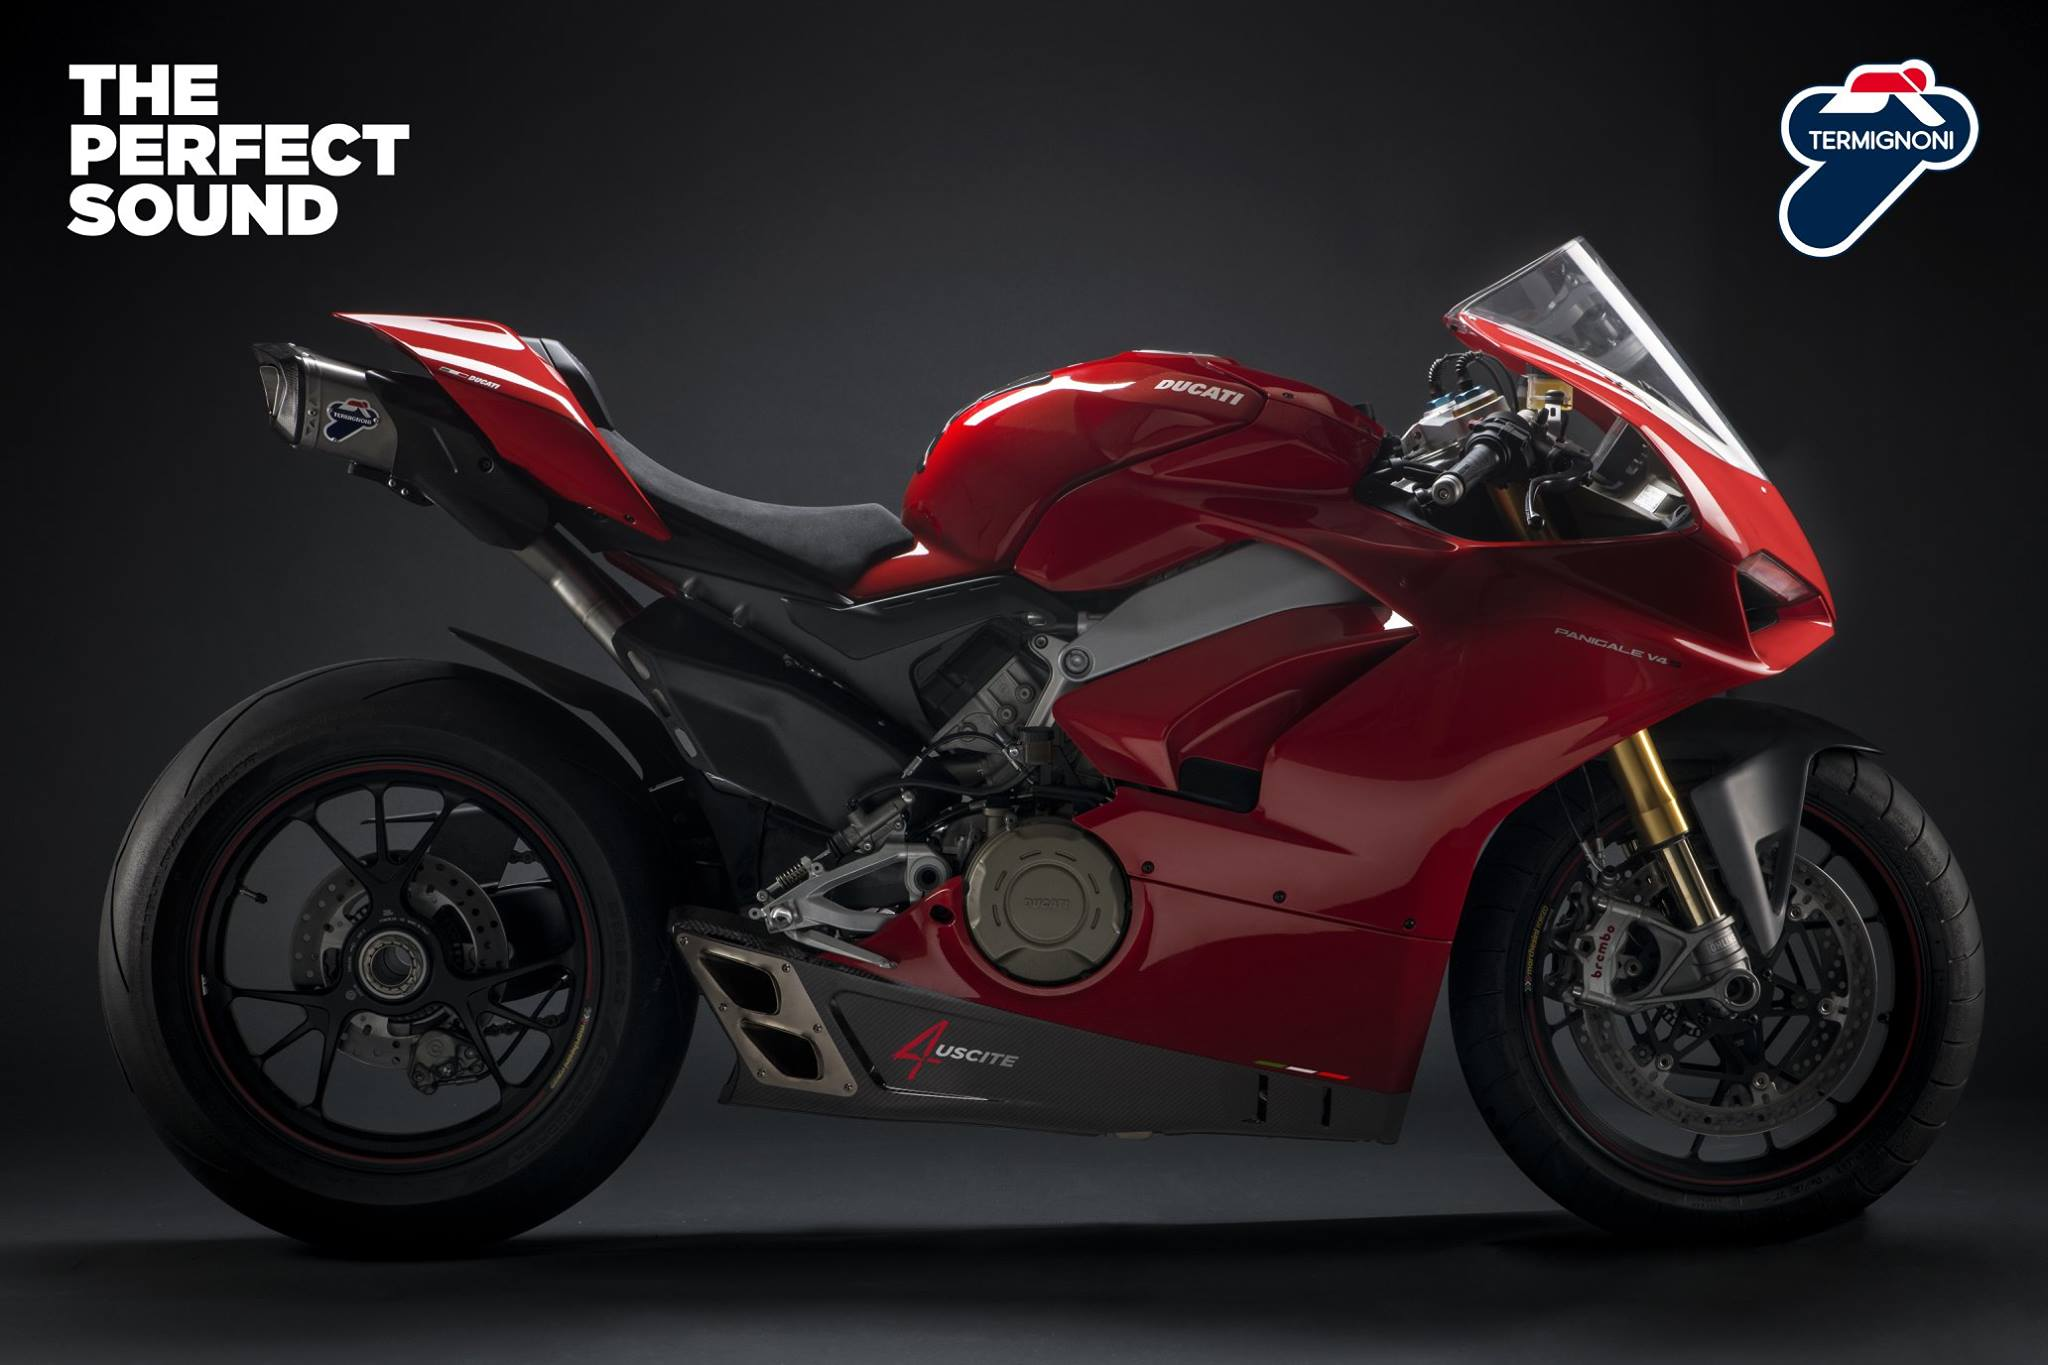 The Ducati Panigale V4 looks good wearing Termignoni